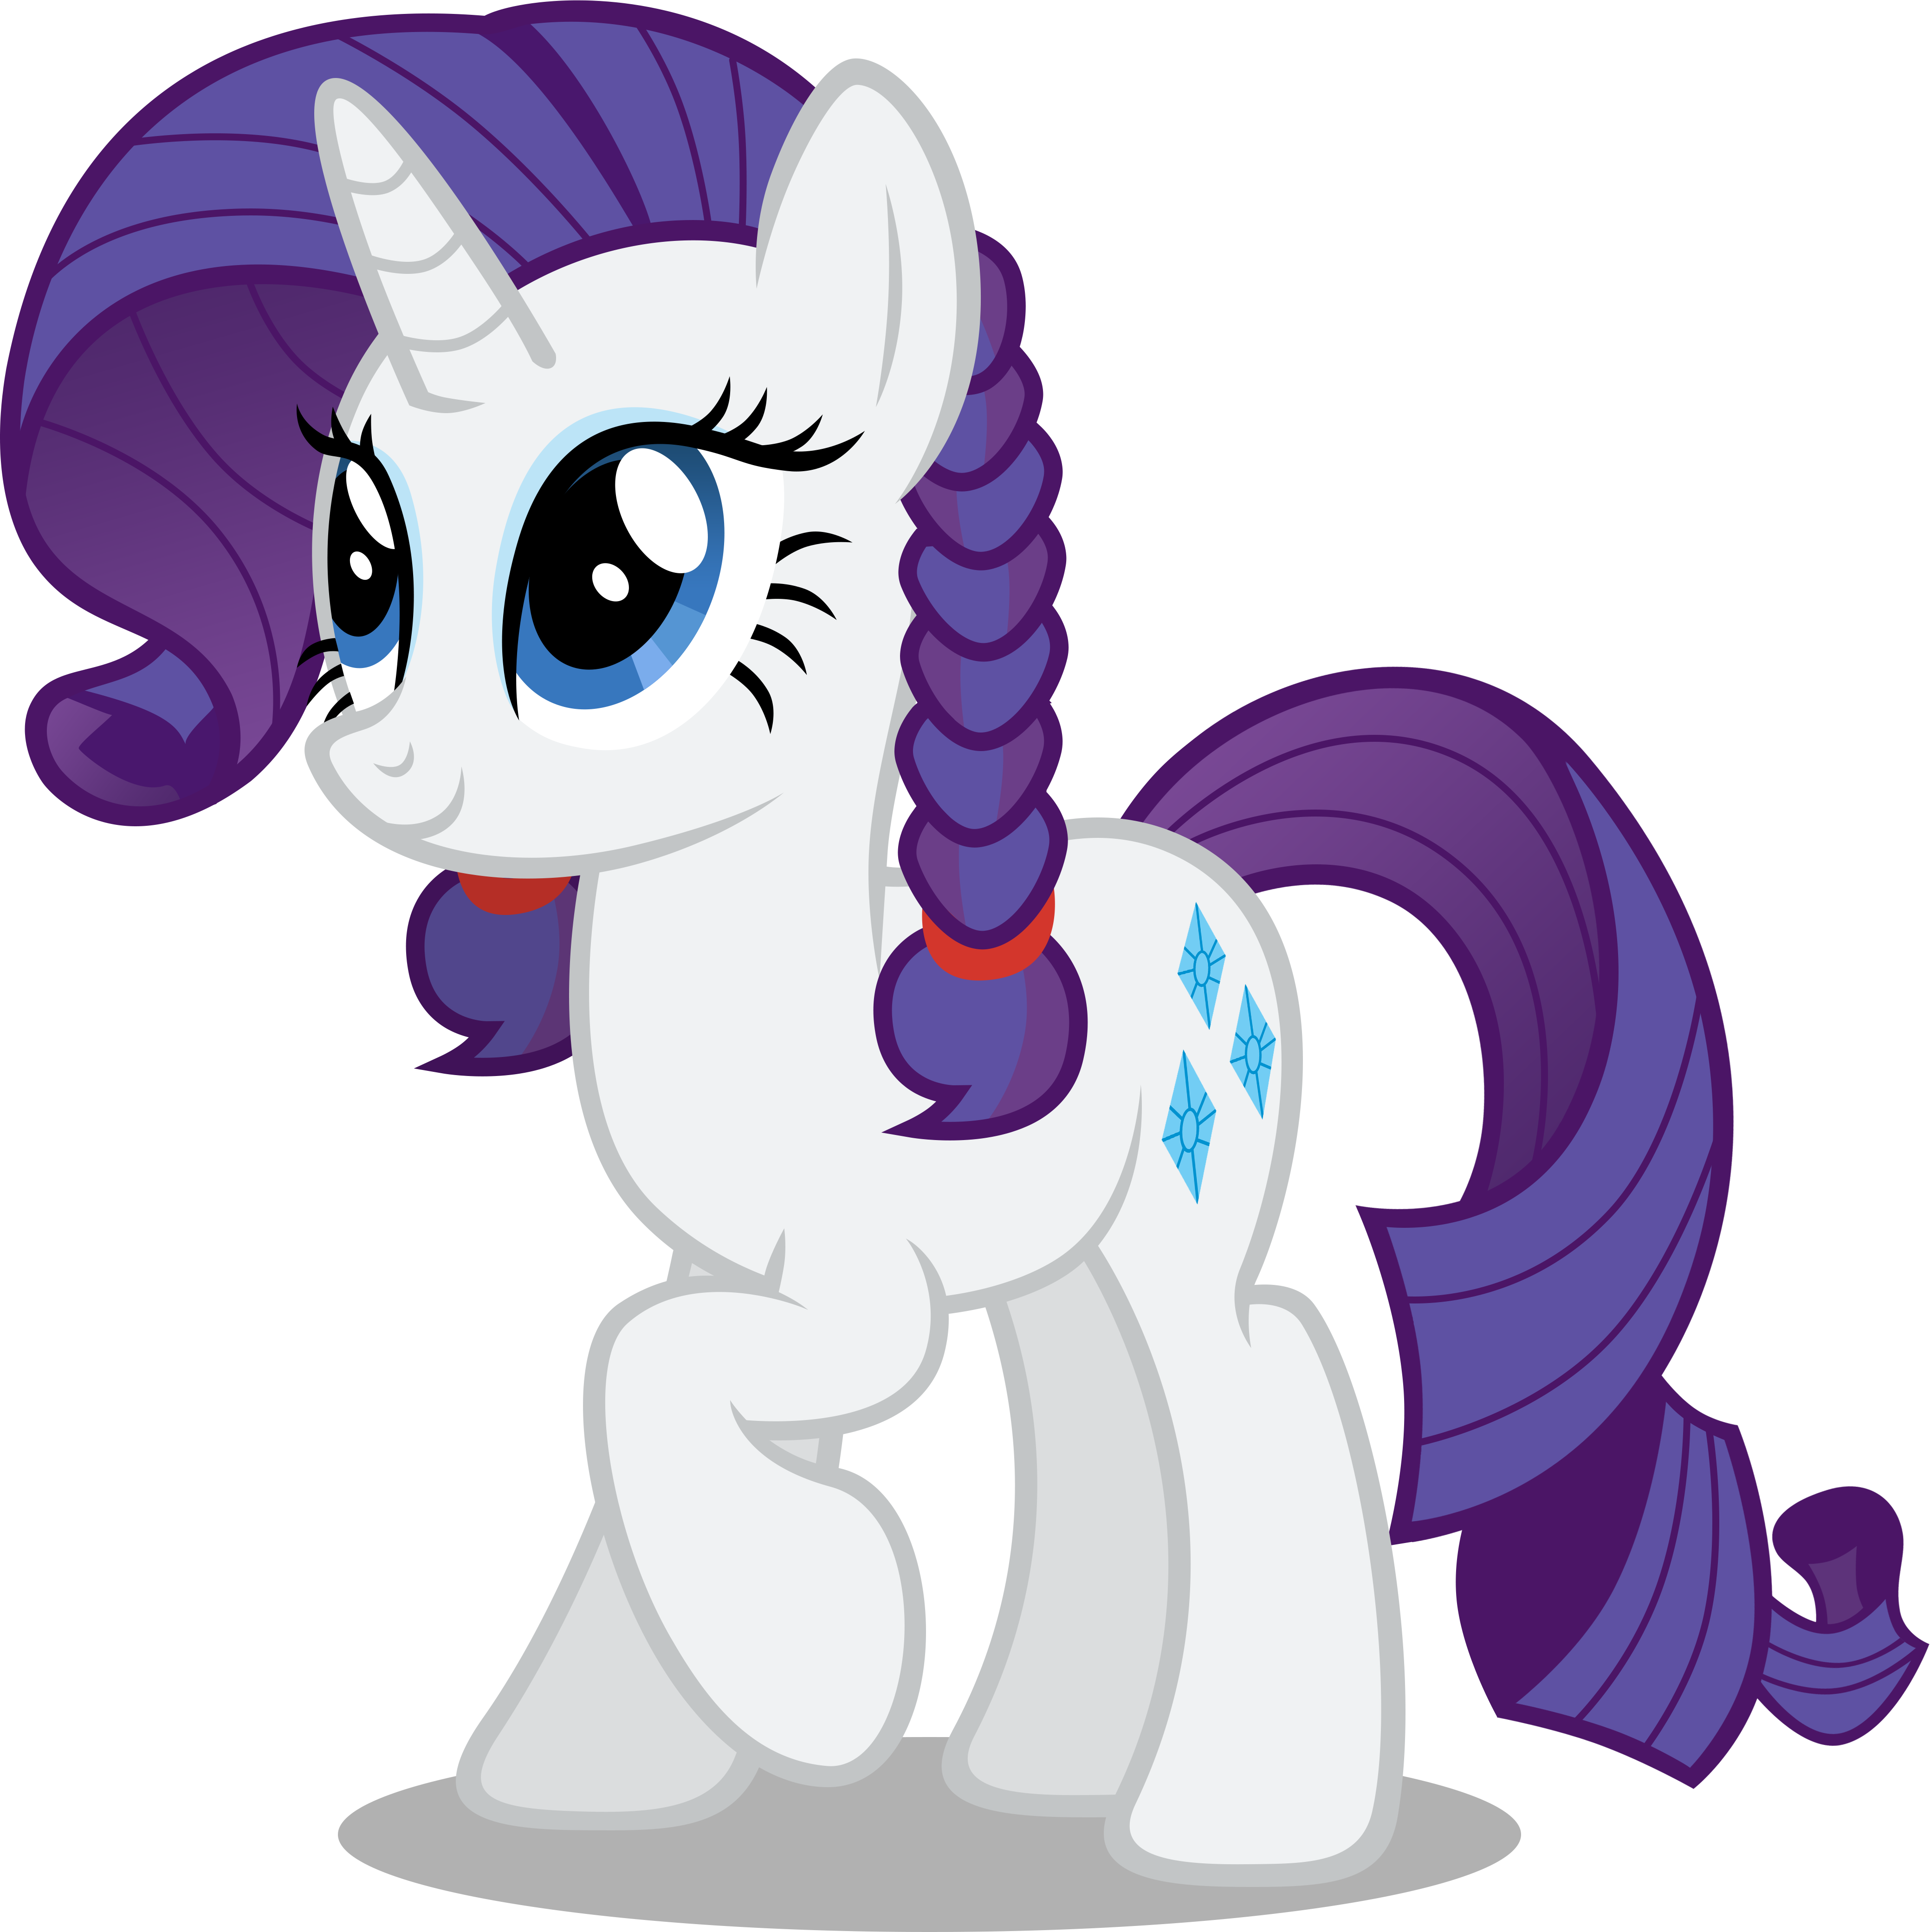 rarity cute little pony friendship magic photo #28049